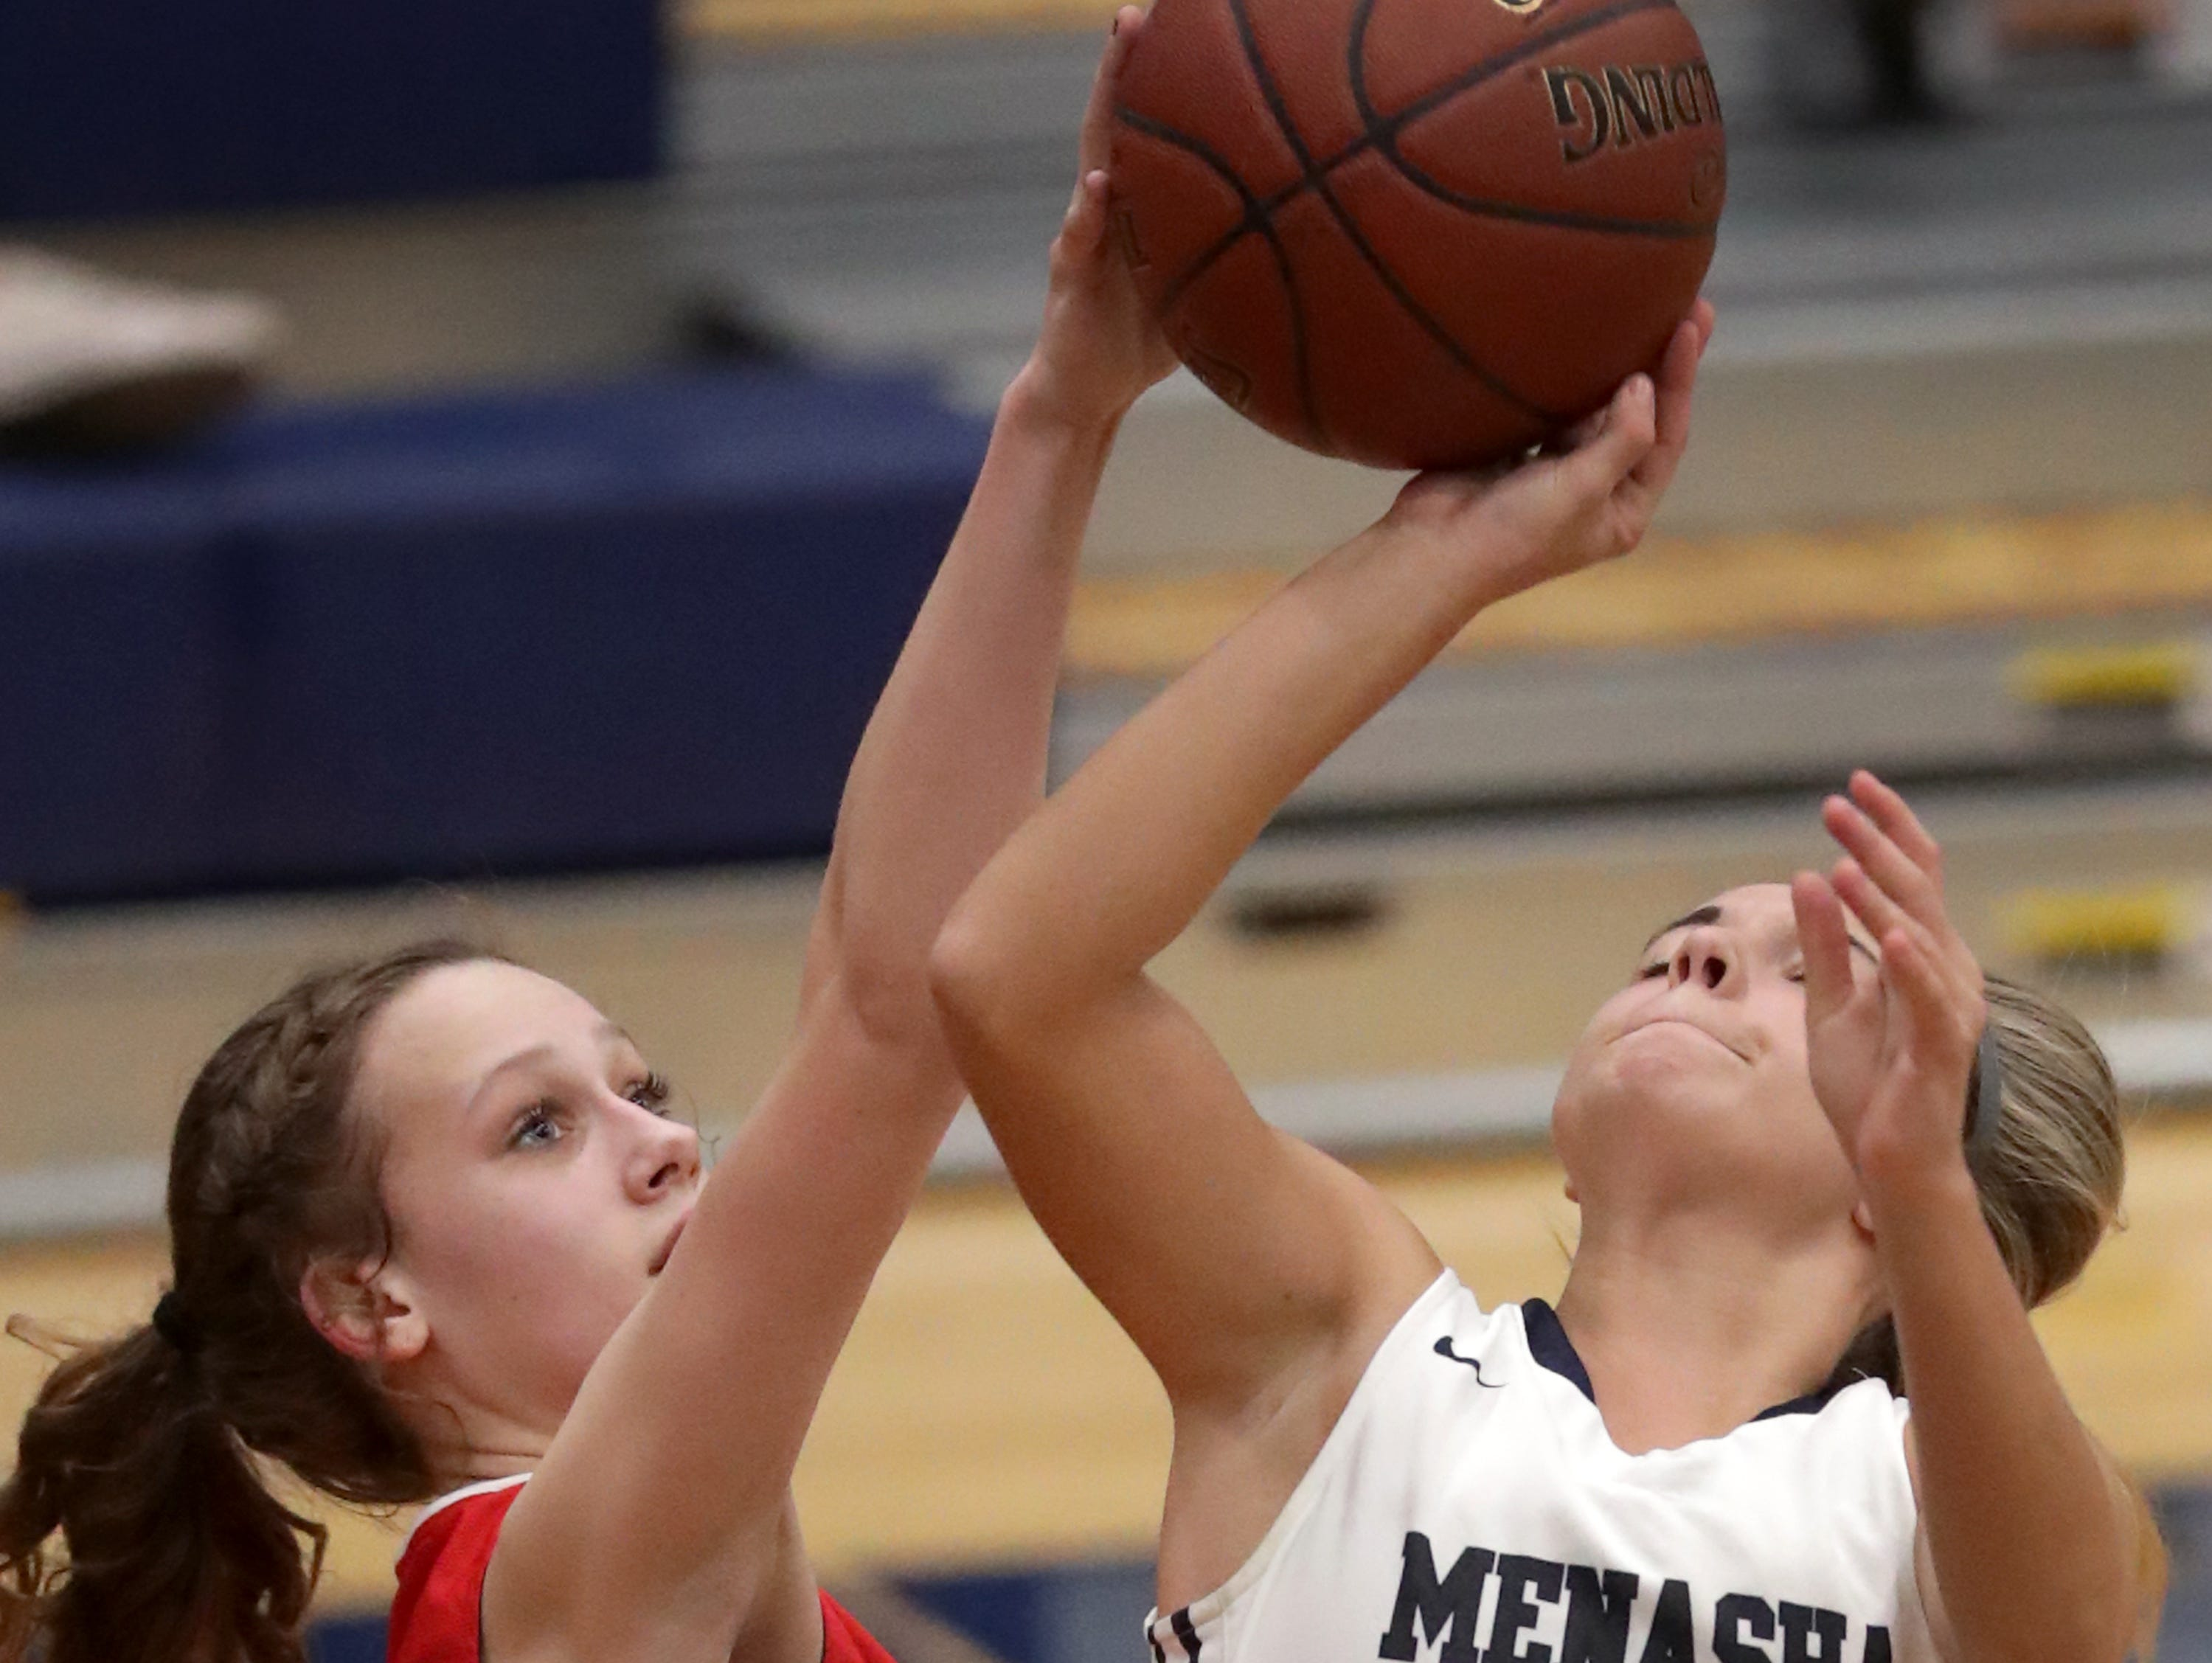 New London High School's #23 BreAnna Hacker against Menasha High School's #12 Katelyn Roesler during their girls basketball game on Friday, December 14, 2018, in Menasha, Wis.